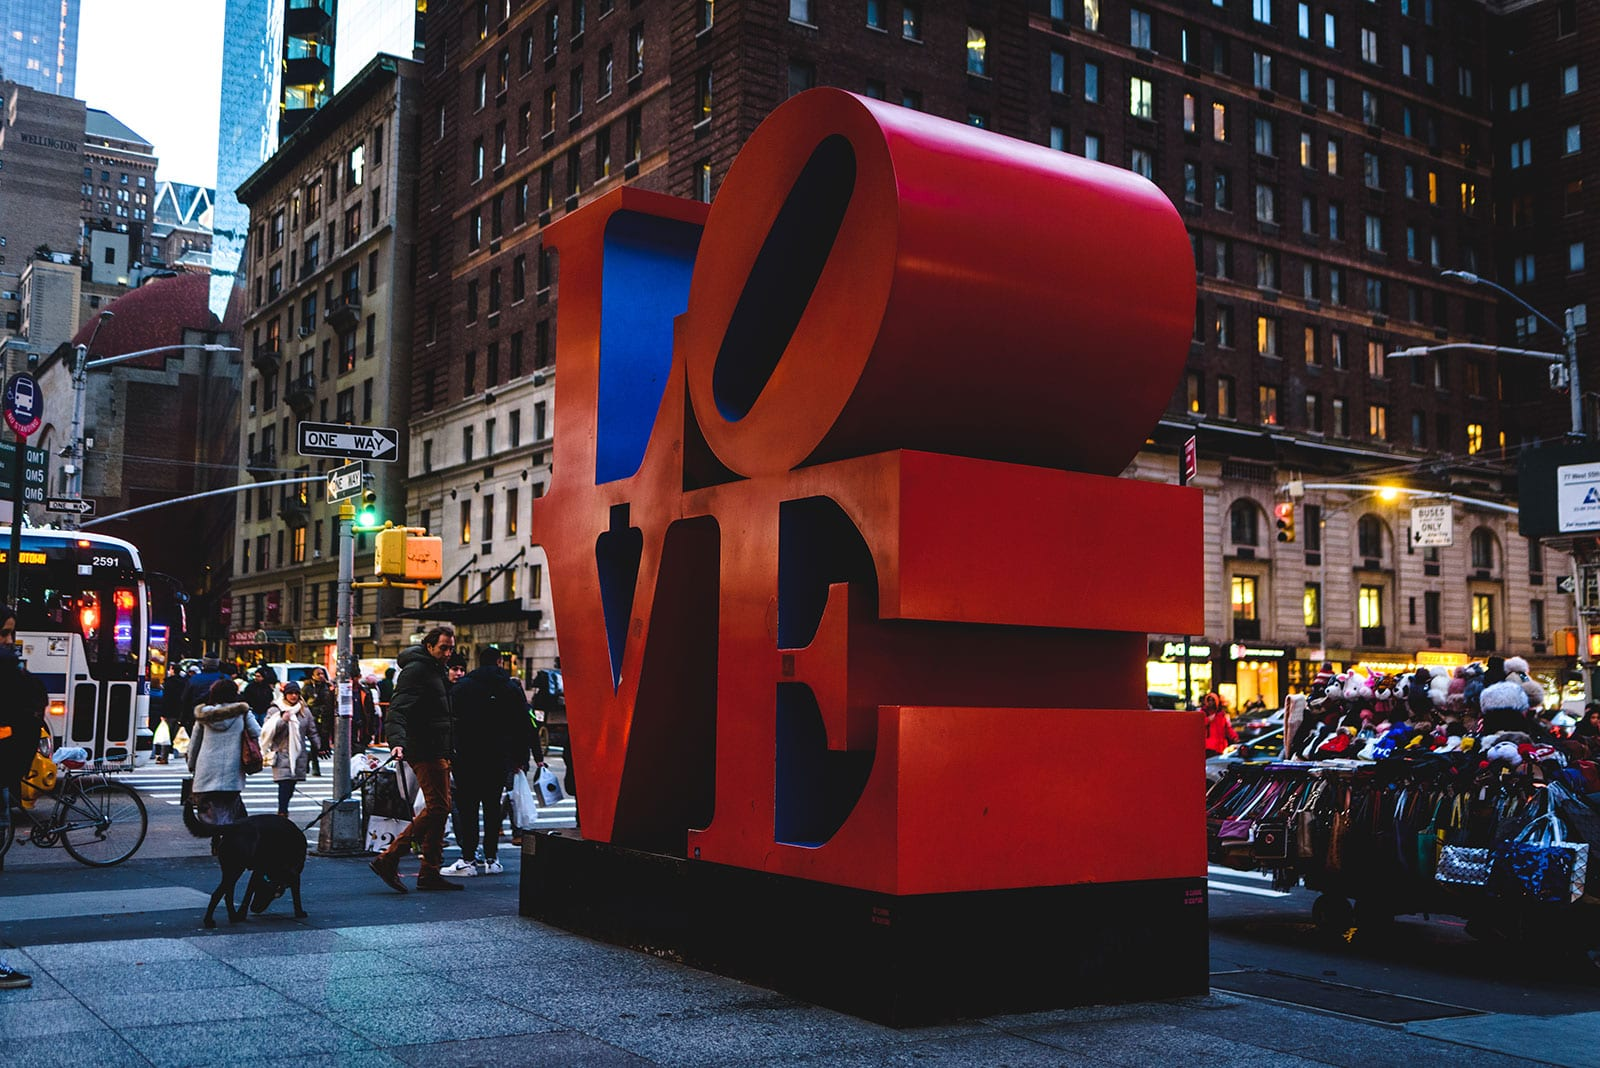 Best Nyc Restaurants 2021 ▷ 11 Things to Do on Valentine's Day in NYC 2021 | Unique Date